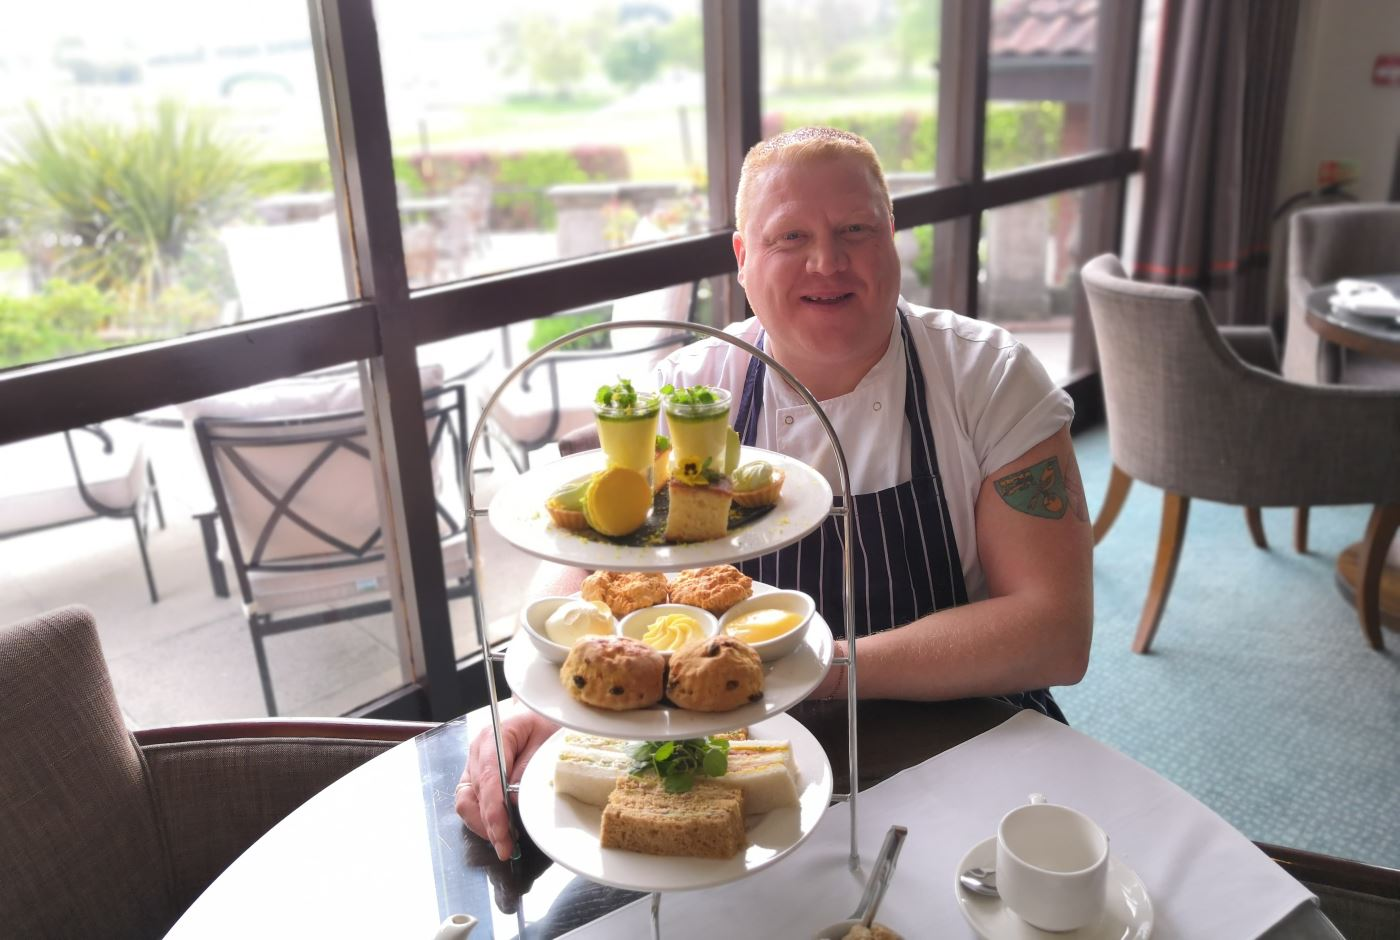 Chef Course Norwich Barnham Broom Celebrates Norwich Promotion With Themed